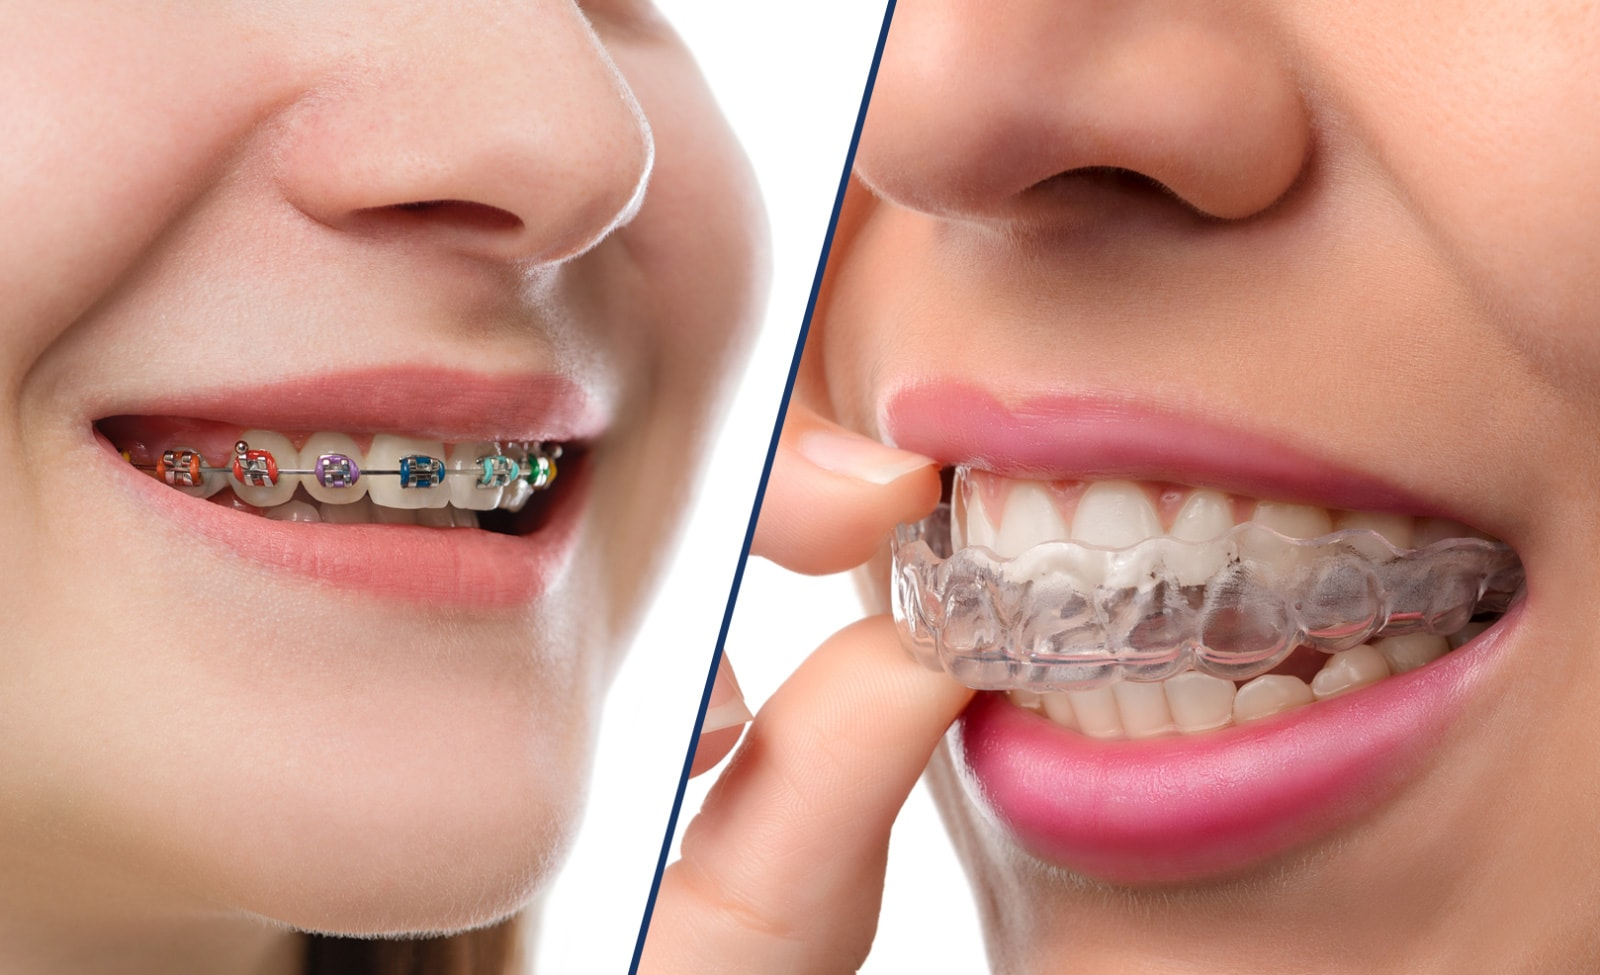 On the left are standard metal braces. On the right is a clear, effective Invisalign aligner.